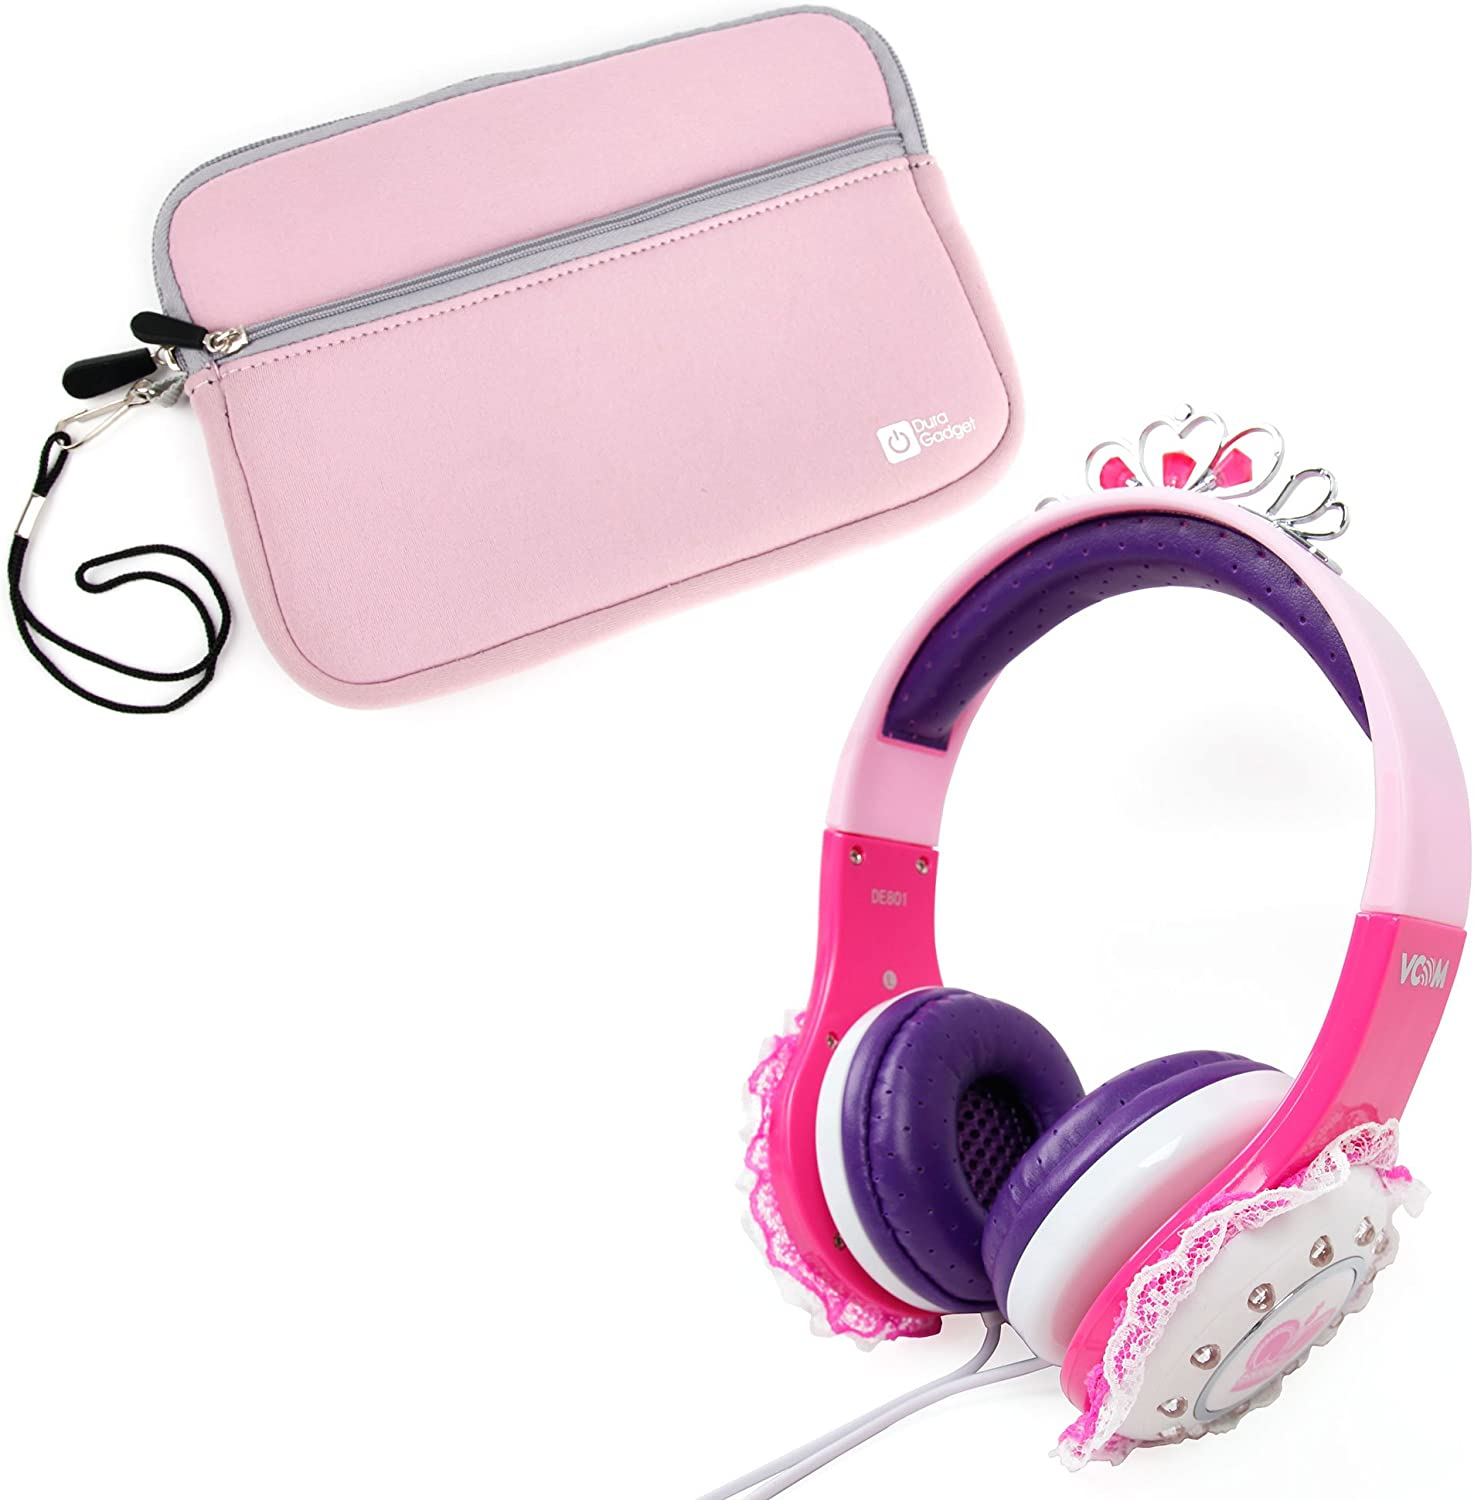 DURAGADGET Children's Pink & Purple 'Princess' Headphones - Compatible with Acer Iconia One 7 B1-730 & Iconia Talk S A1-724 + Pink Neoprene Soft Case